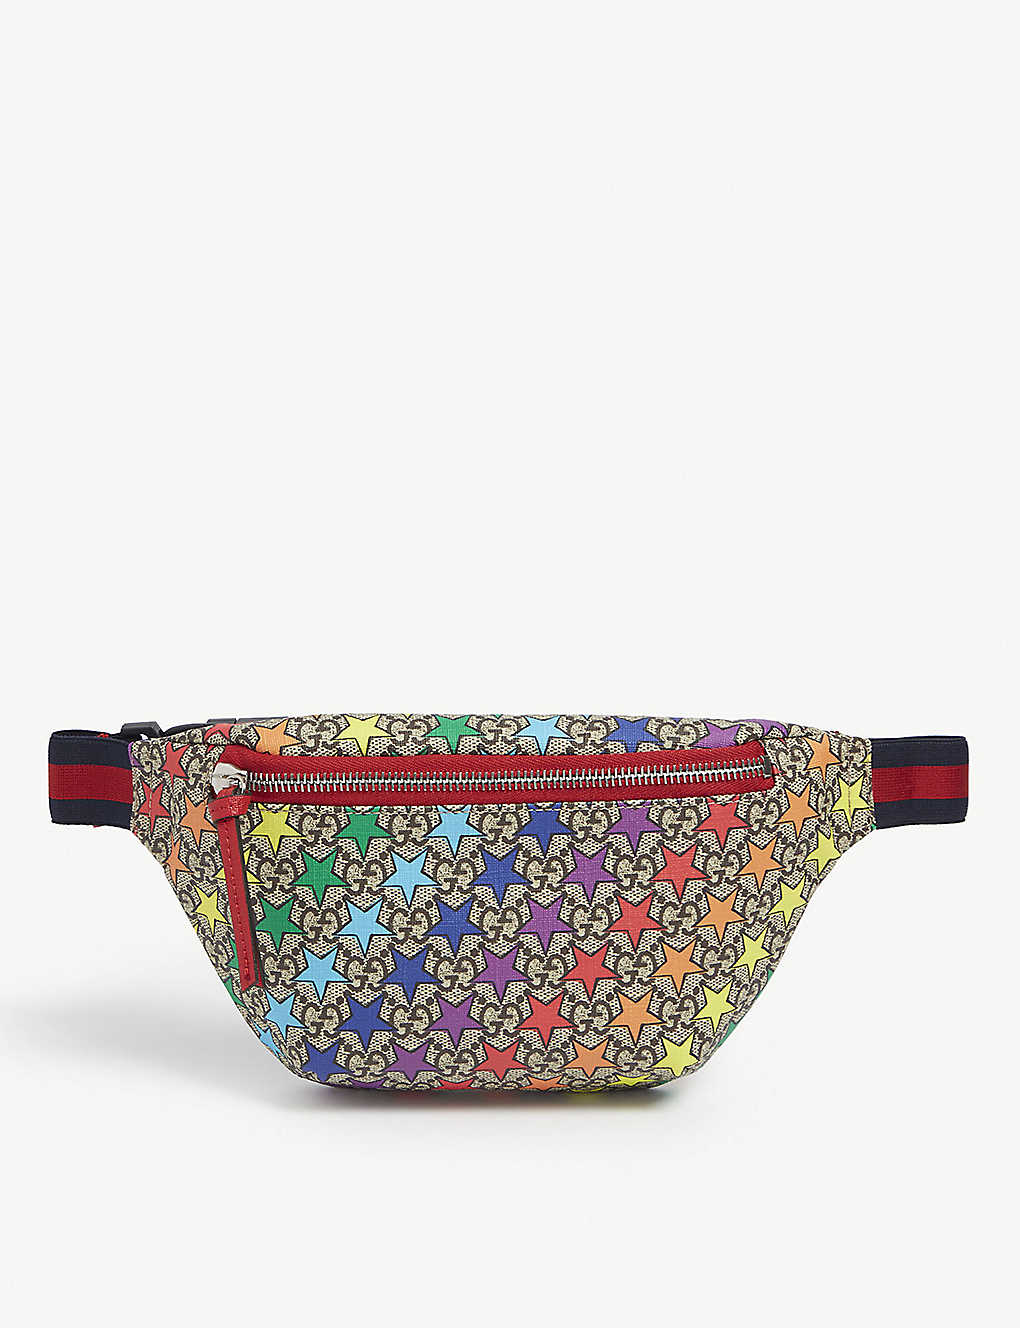 fd3a586a7147 GUCCI - GG rainbow star canvas belt bag | Selfridges.com